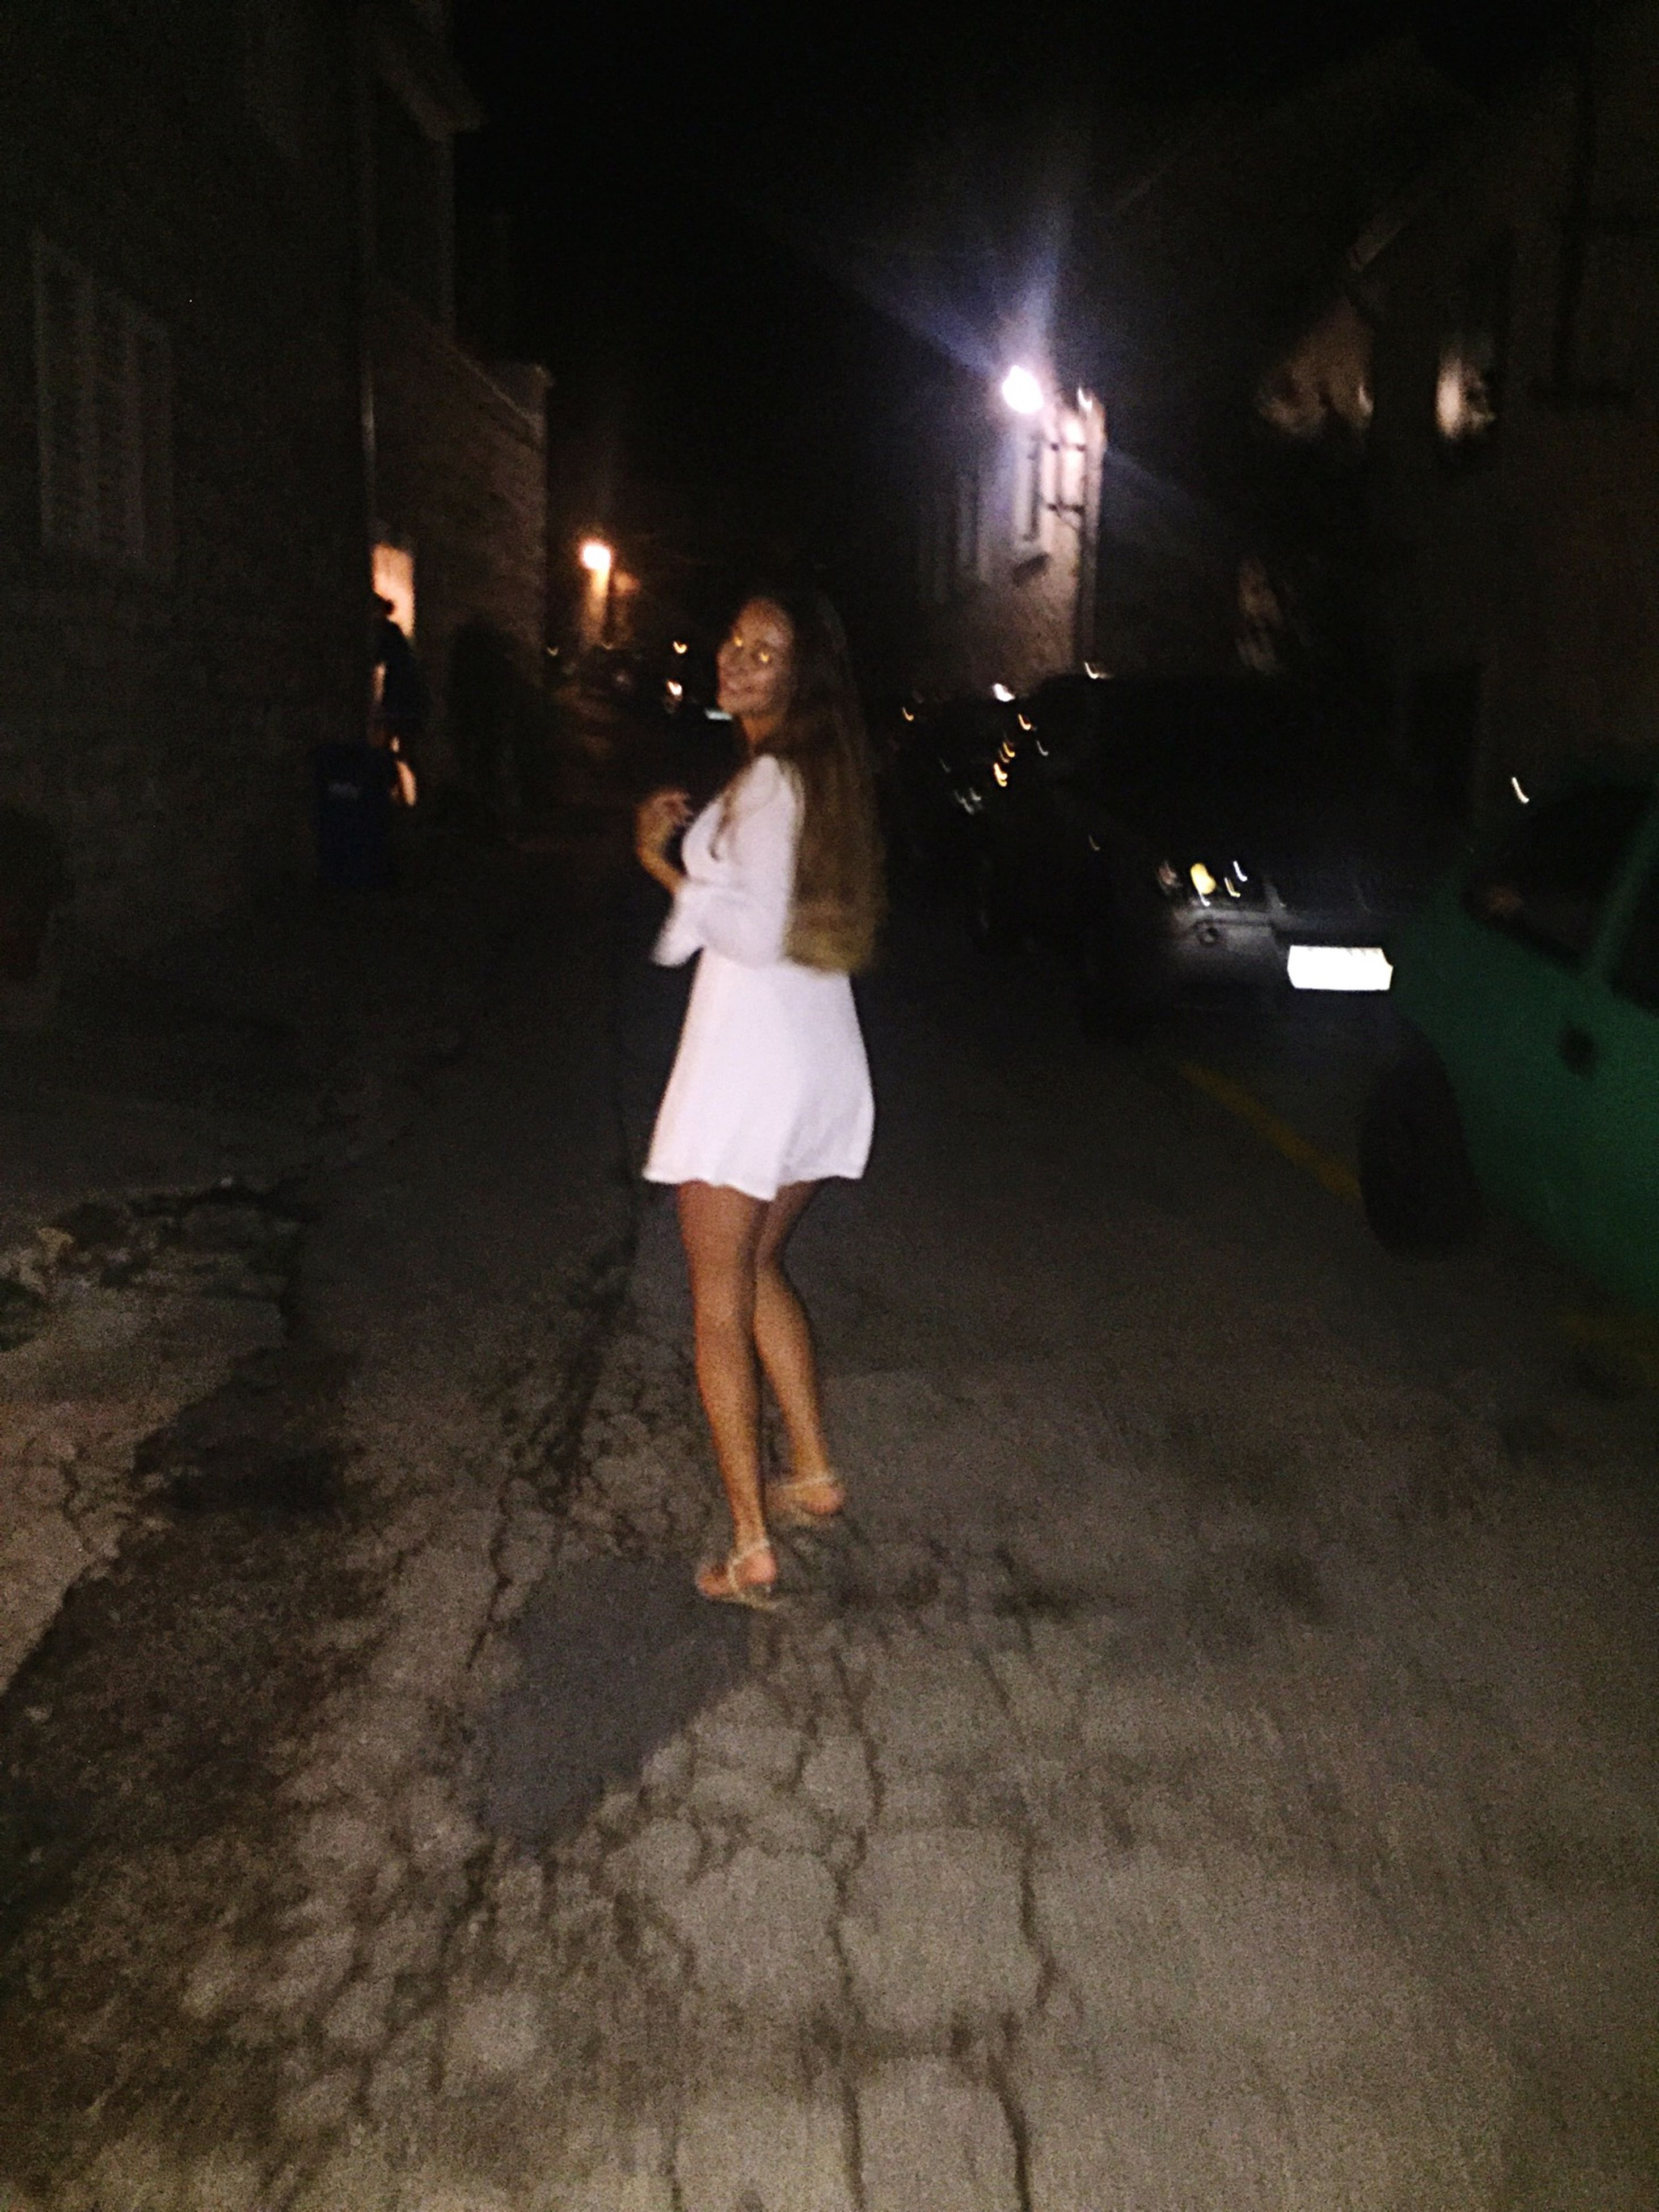 night, illuminated, street, full length, lifestyles, leisure activity, walking, casual clothing, architecture, building exterior, road, built structure, standing, outdoors, person, footpath, in front of, city life, young adult